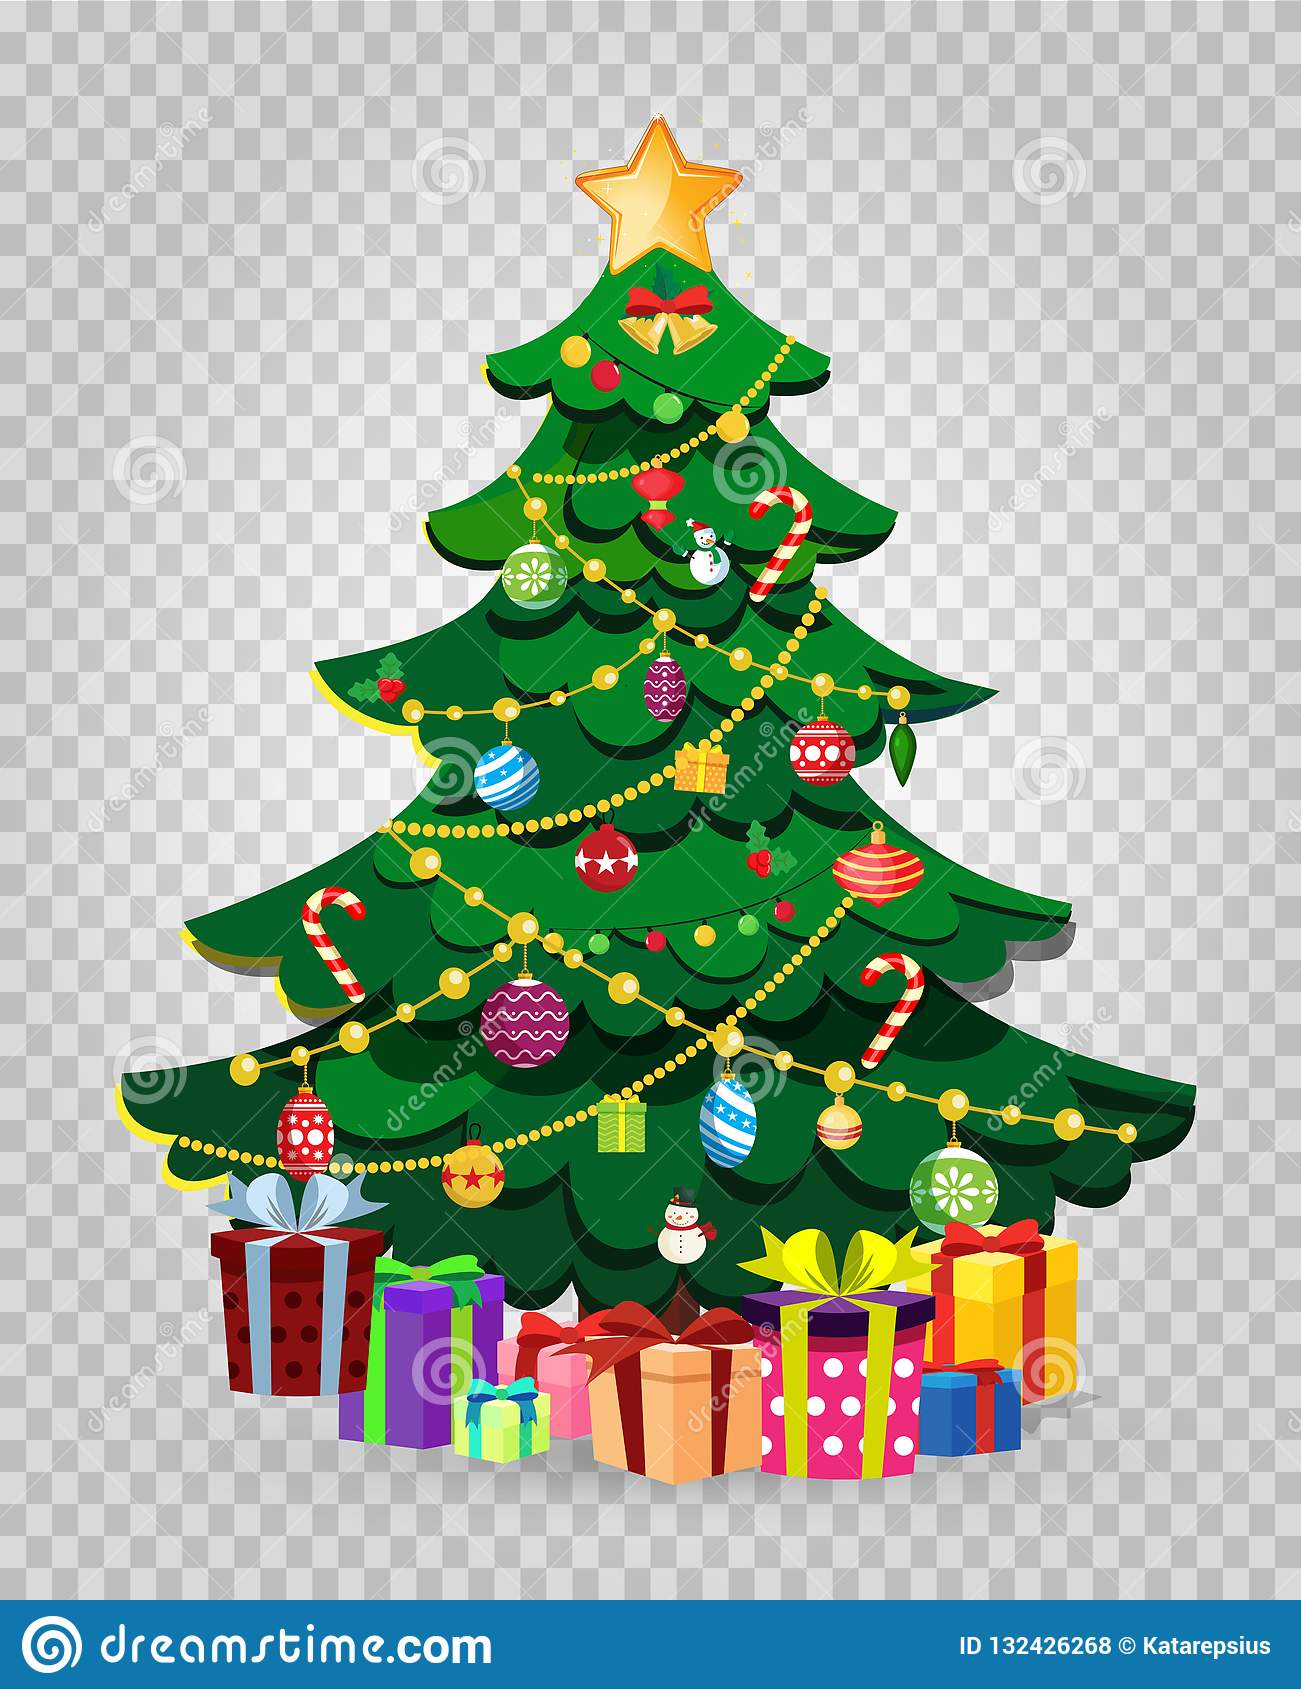 Cute Cartoon Decorated Christmas Fir Tree With Gifts And Presents Stock Vector Illustration Of Gifts Christmas 132426268 C4d max 3ds dae fbx oth obj. https www dreamstime com cute cartoon decorated christmas fir tree gifts presents many present boxes star balls garland isolated transparent image132426268